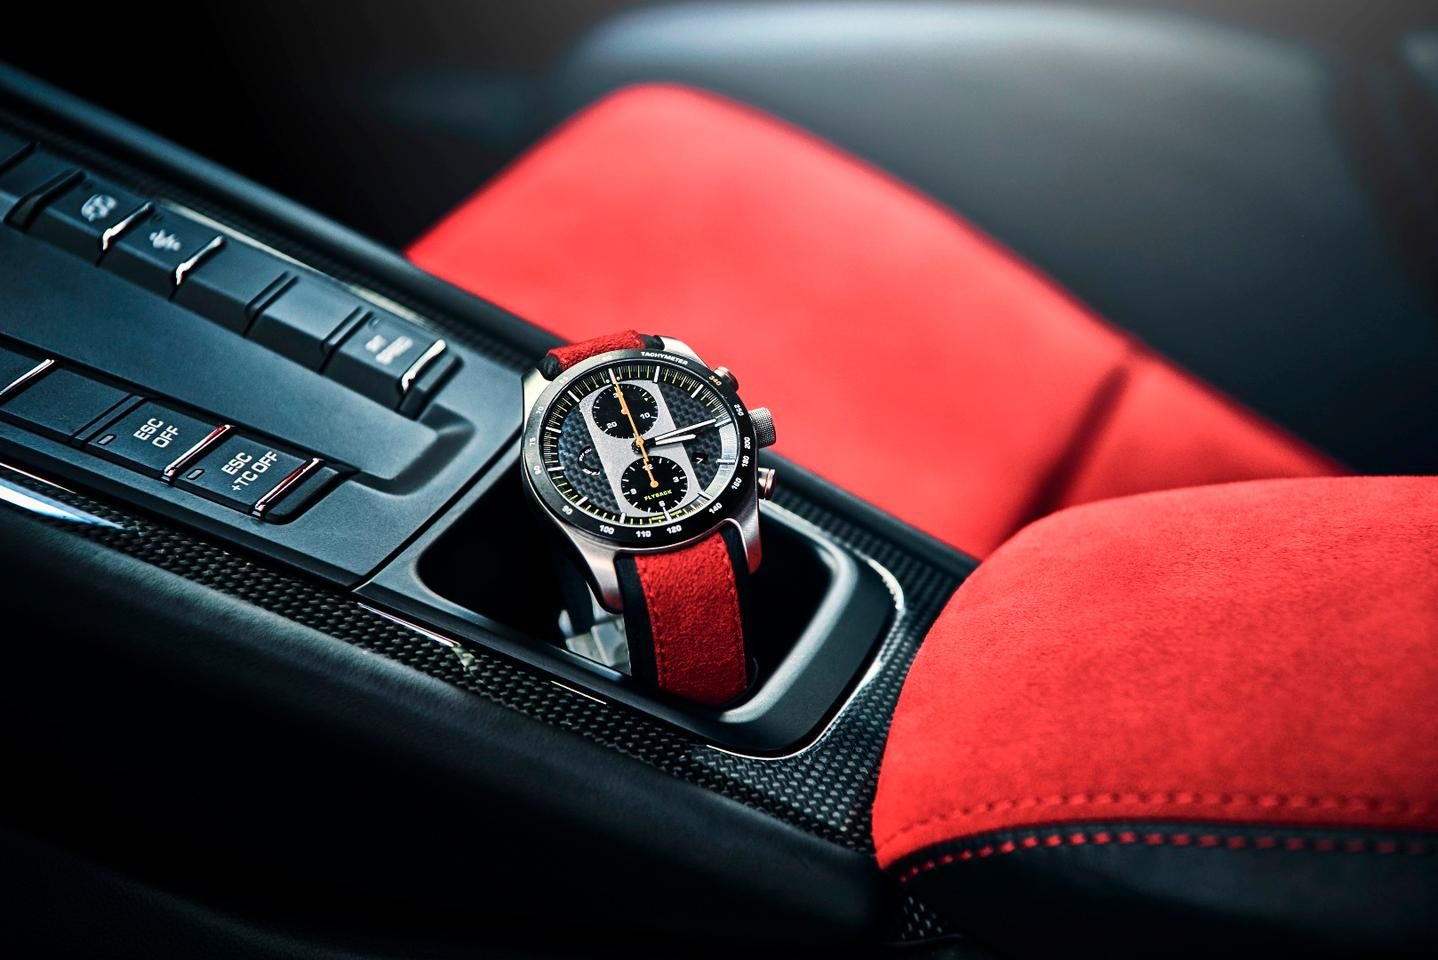 The Porsche Design chronograph looks right at home inside the 911 GT2 RS